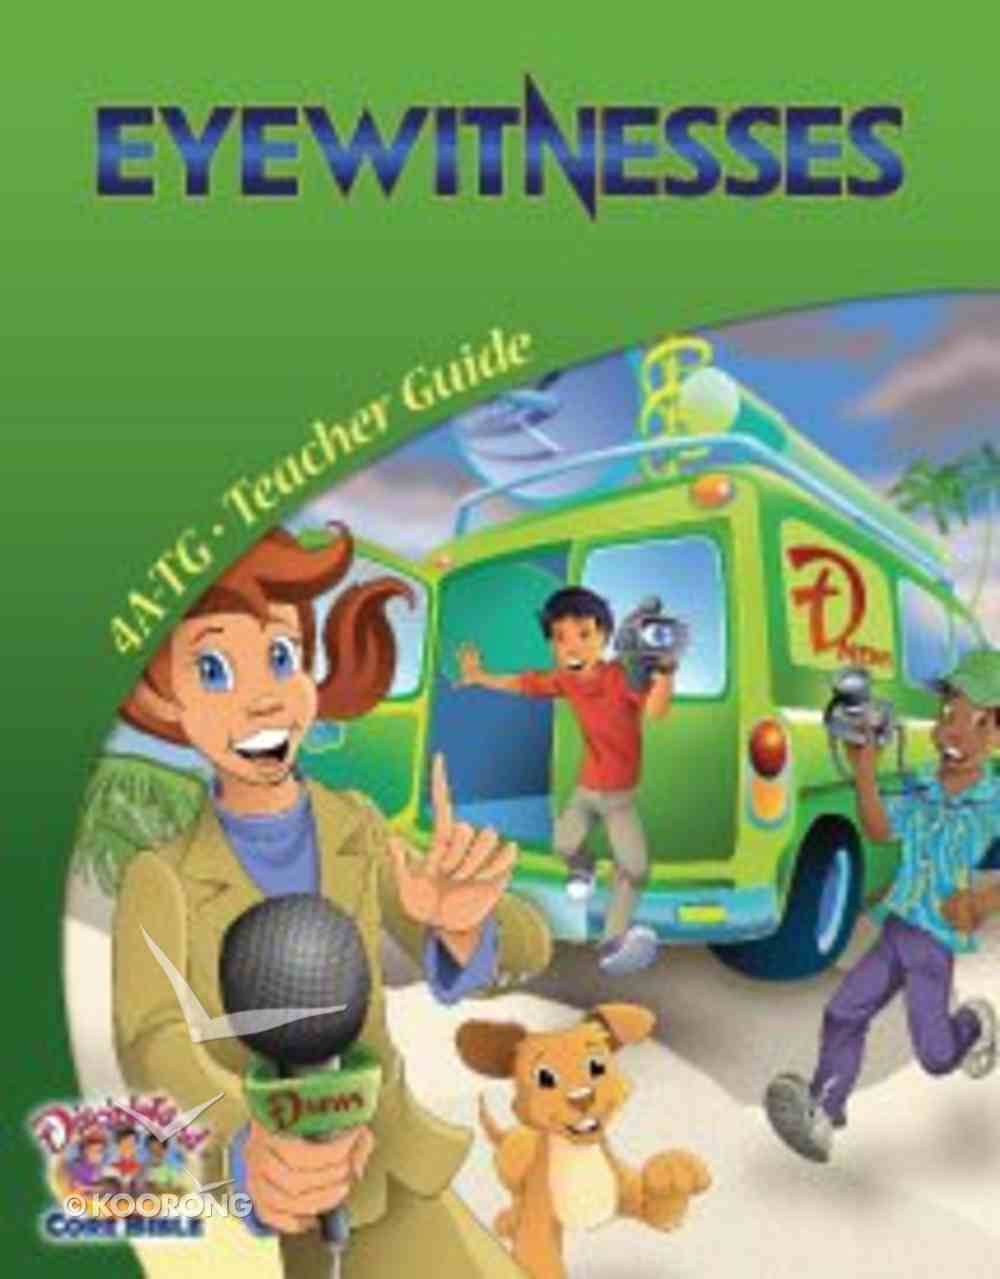 Dlc A4: Eyewitnesses Teacher's Guide Ages 9-11 (Discipleland Level 4, Ages 9-11, Qtrs Abcd Series) Paperback